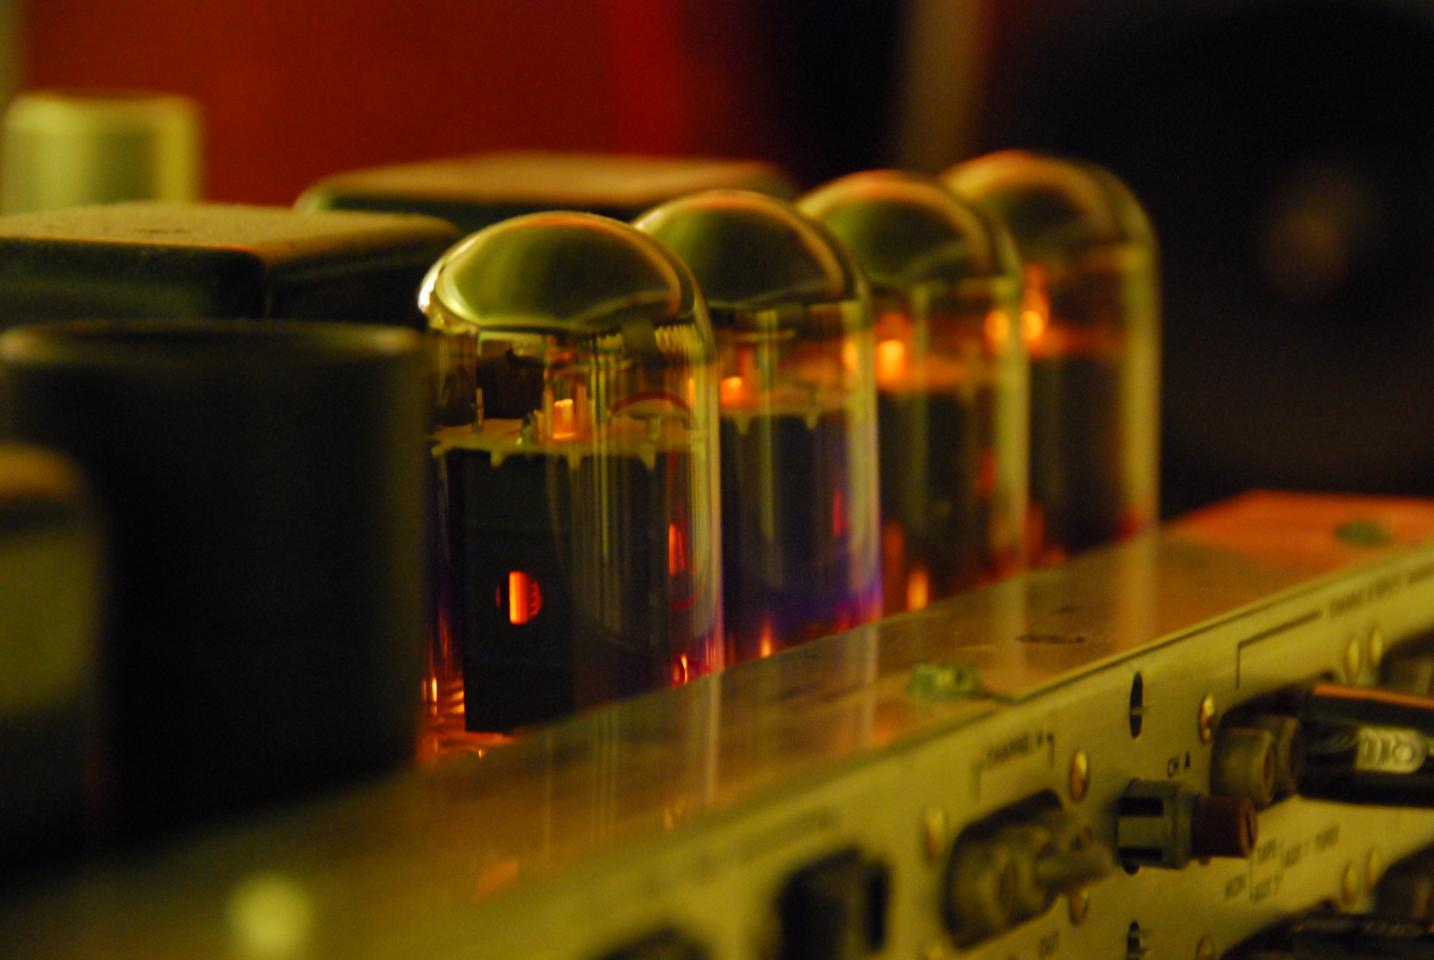 Researchers at NASA and the National Nanofab Center in South Korea are working on a vacuum channel transistor that can combines the best traits from transistors and vacuum tubes (Image: Wikimedia Commons)